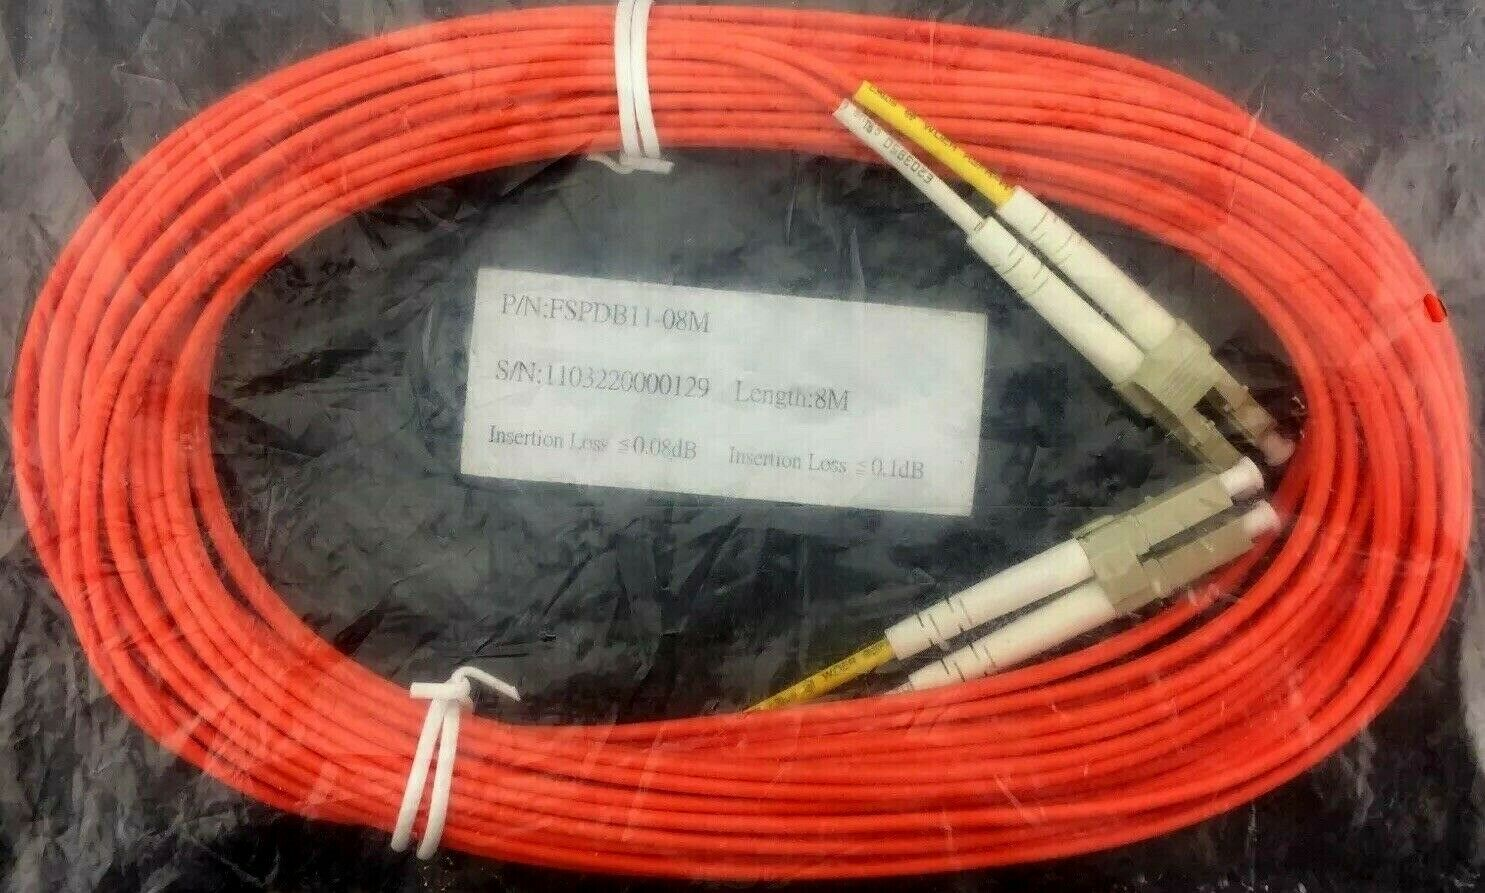 FSPDB11-08M Fiber Optic Patch Cable LC to LC Male Duplex Multimode Audio 8m/26ft